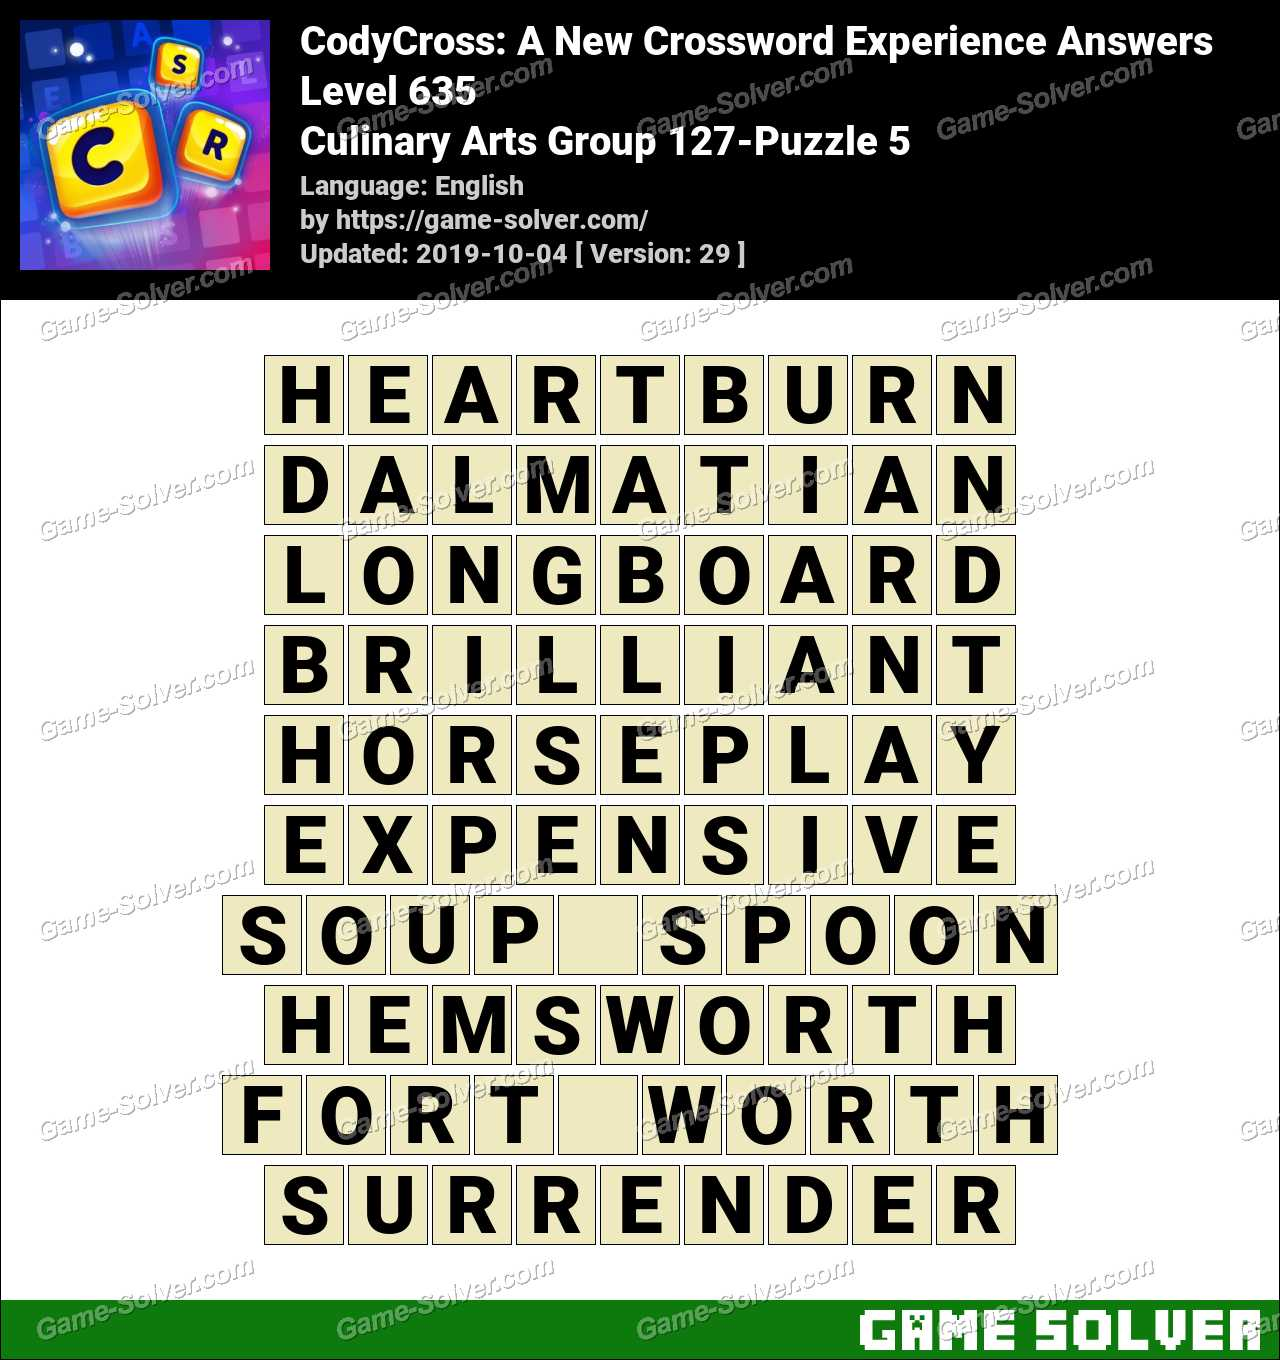 CodyCross Culinary Arts Group 127-Puzzle 5 Answers